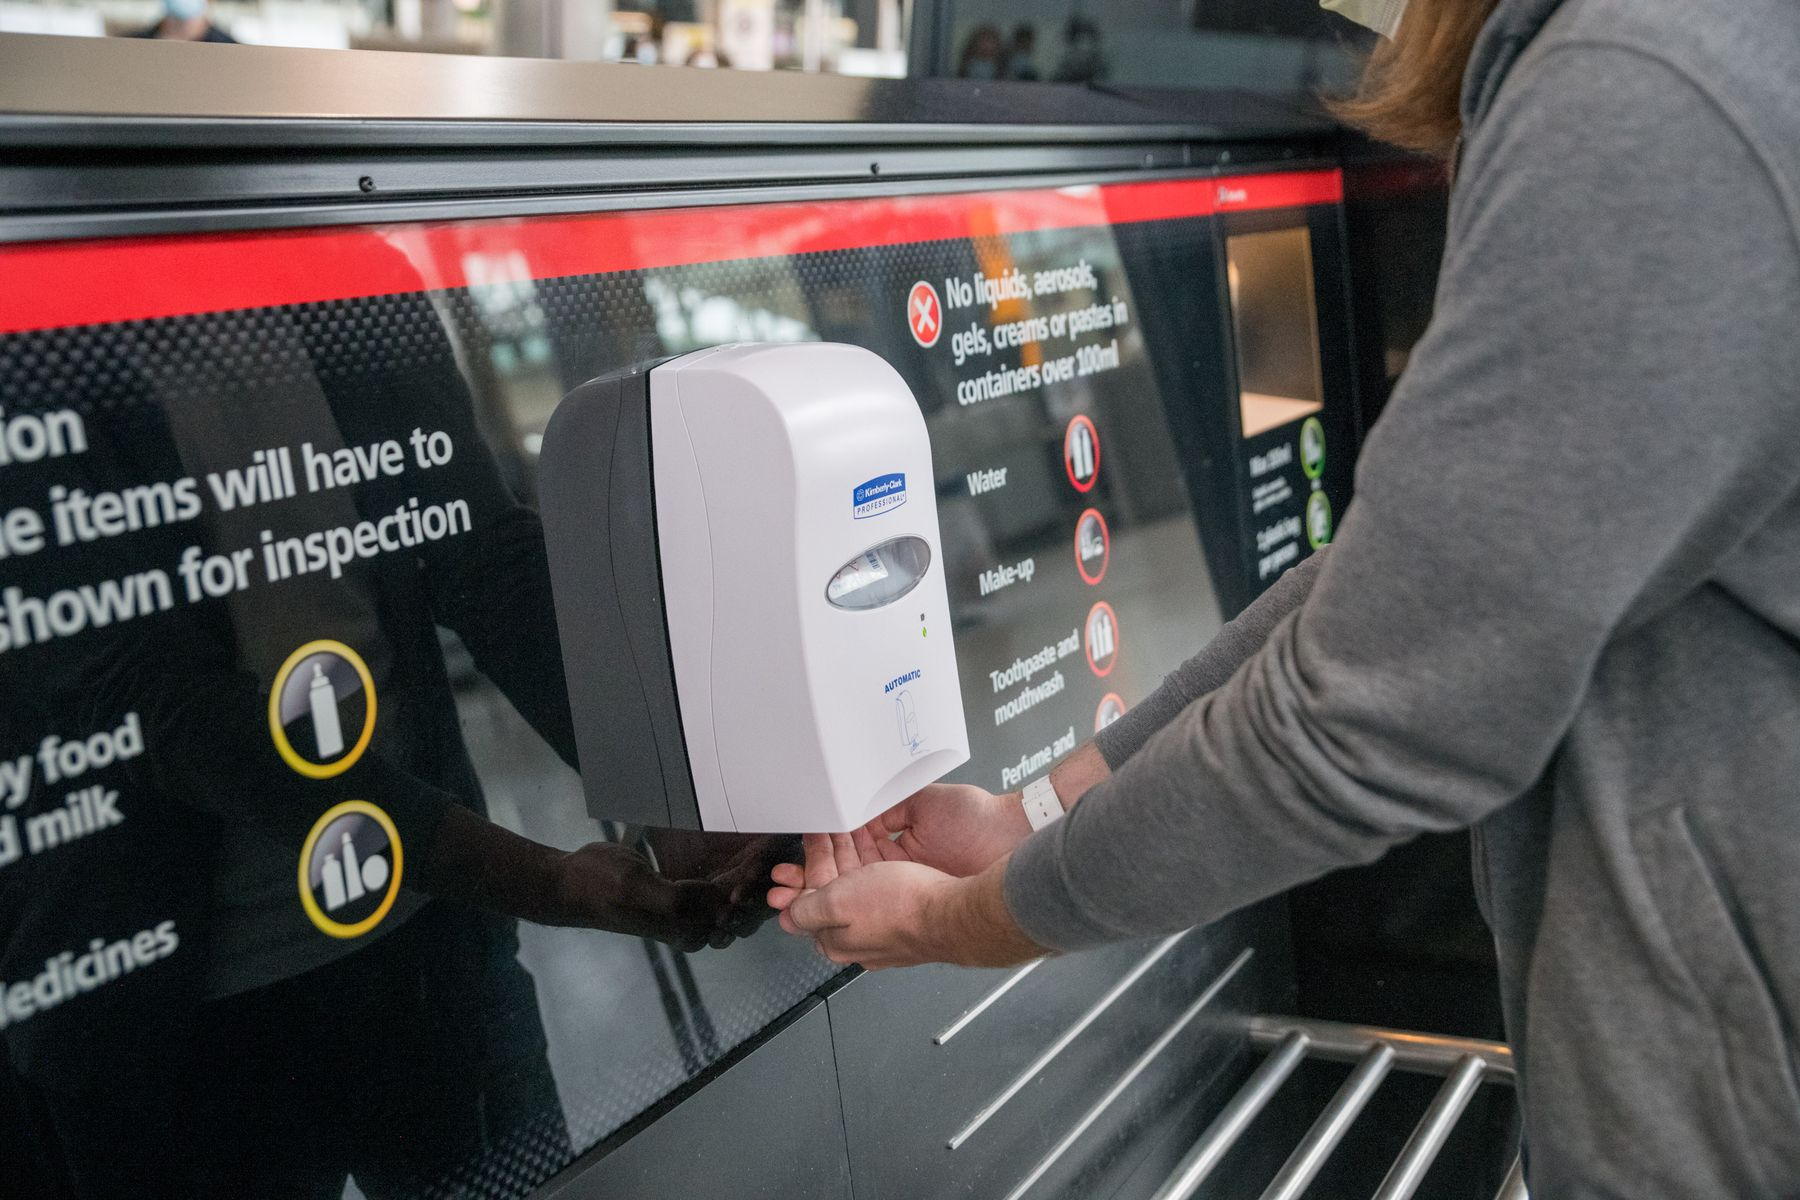 hand sanitizer station in airport